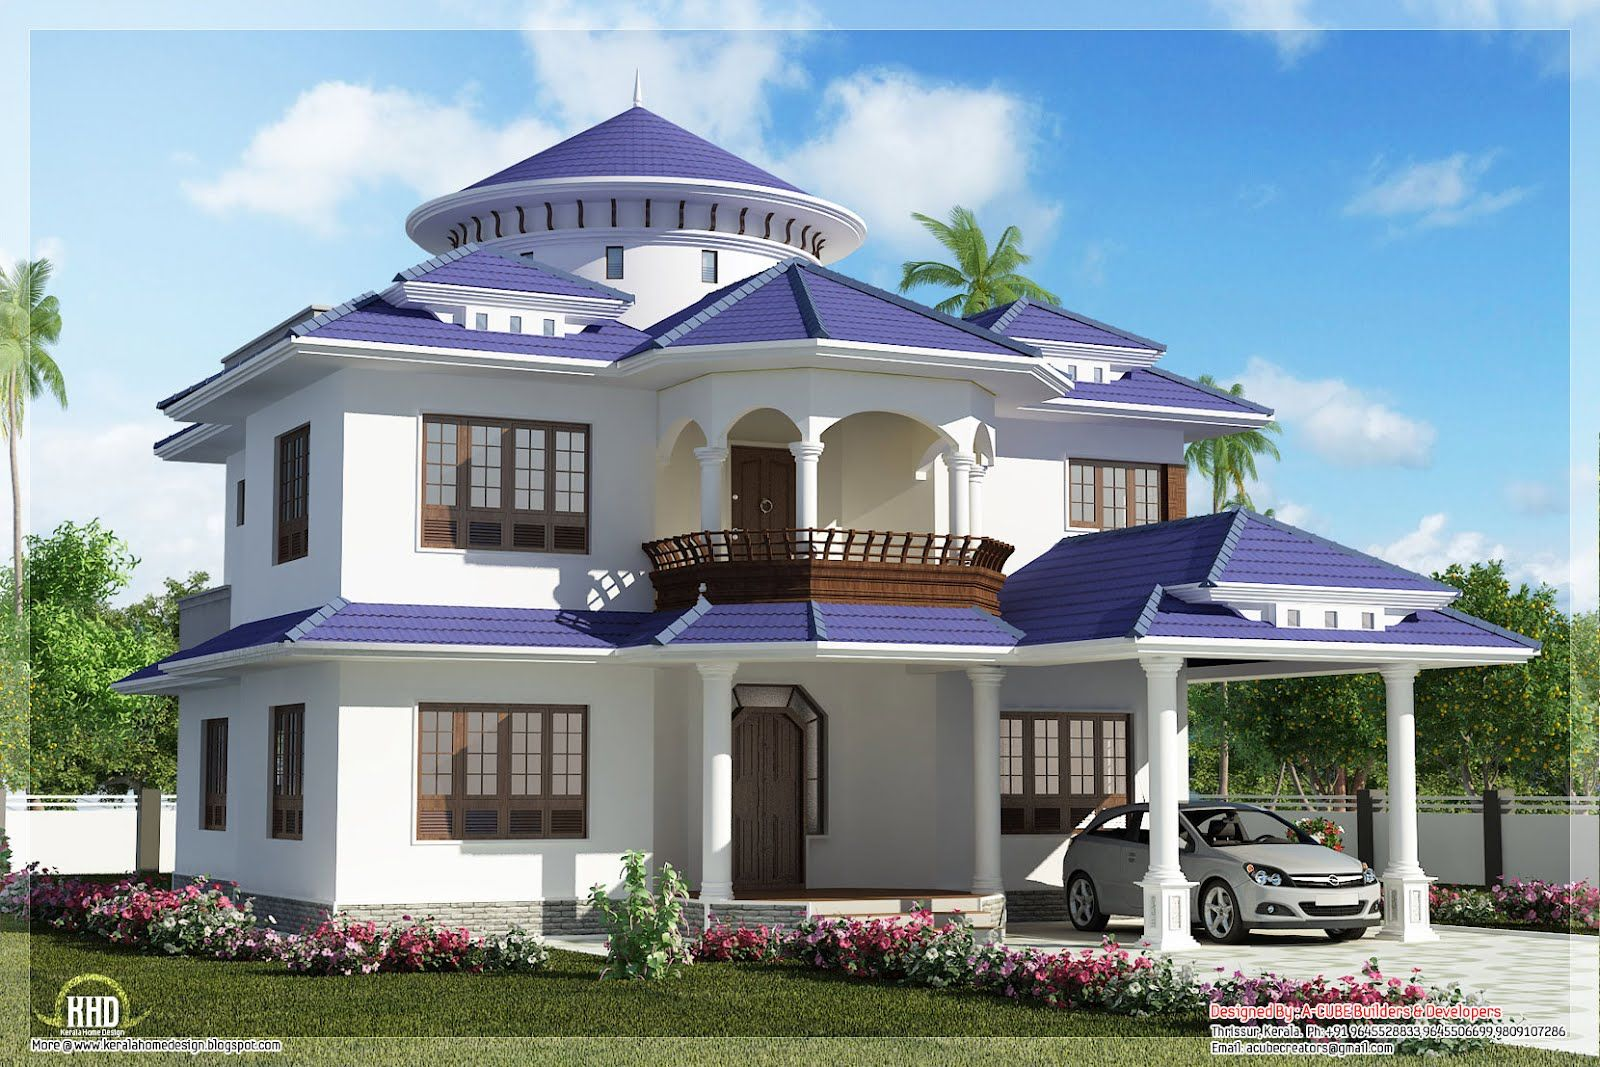 2 bedroom house plans kerala style | design ideas 2017-2018